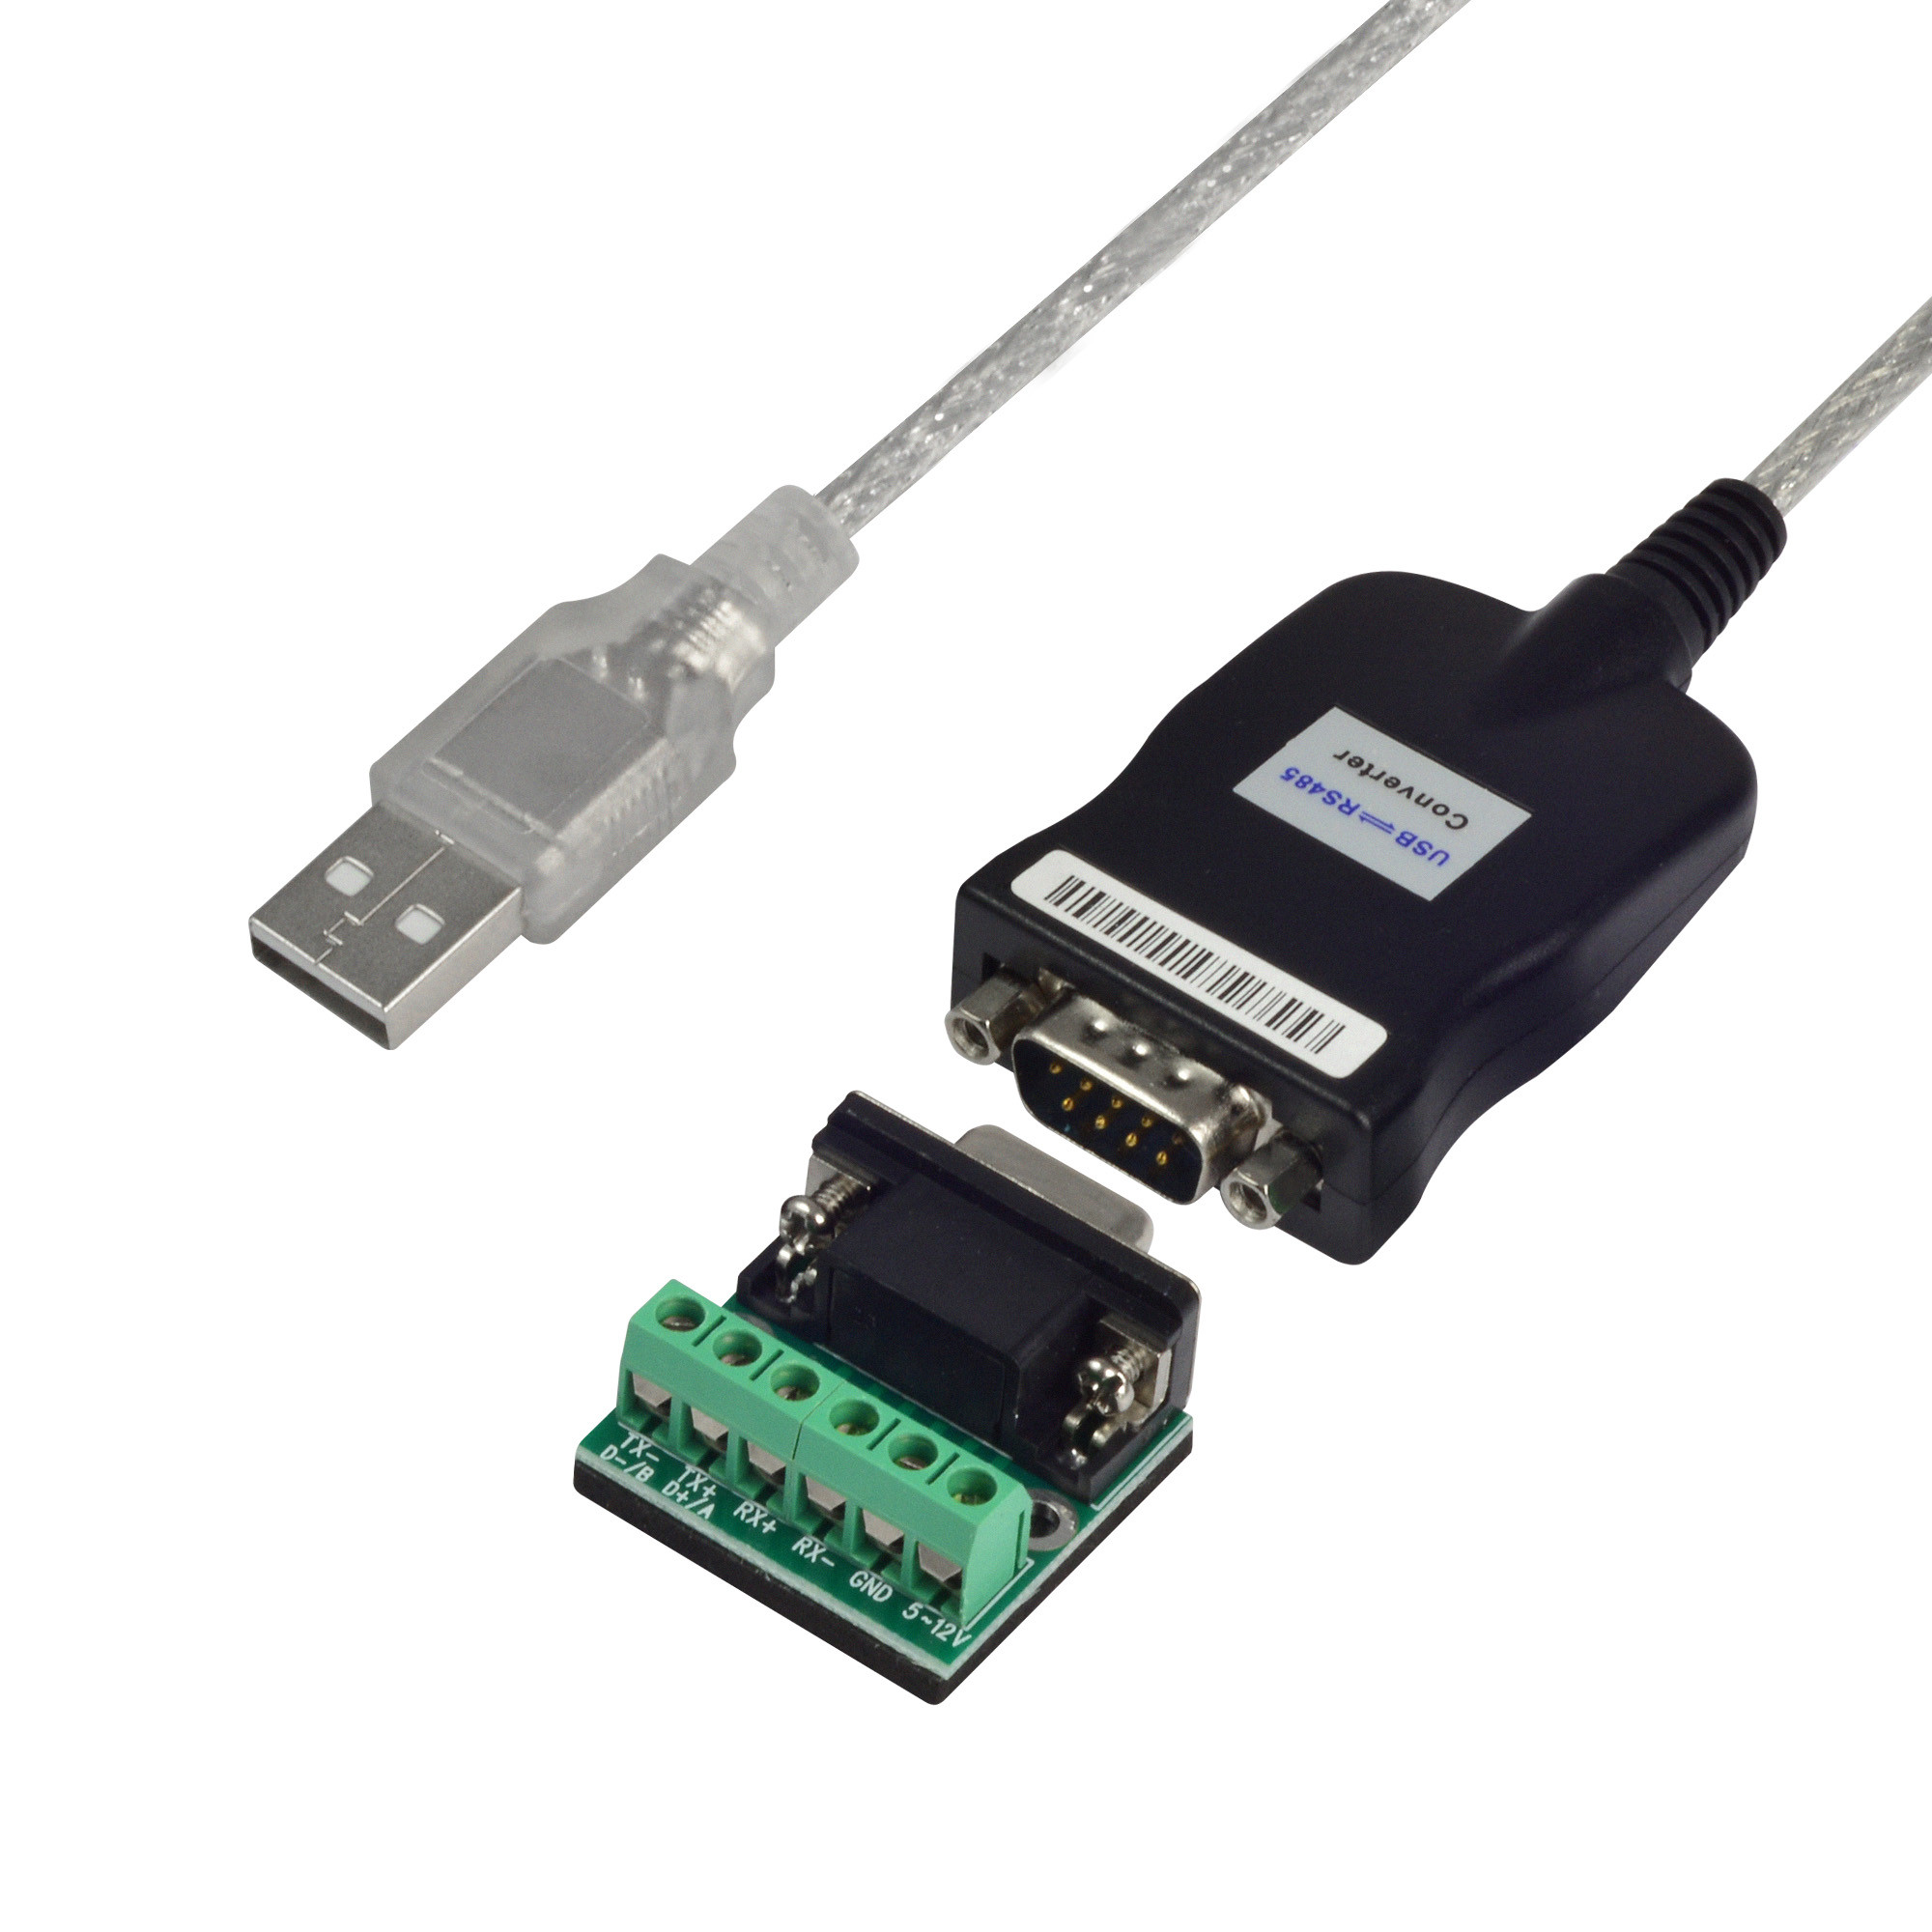 Usb 20 to rs232 rs485 rs422 db9m serial port device converter mengs usb 20 to rs232 rs485 rs422 db9m serial port device sciox Gallery